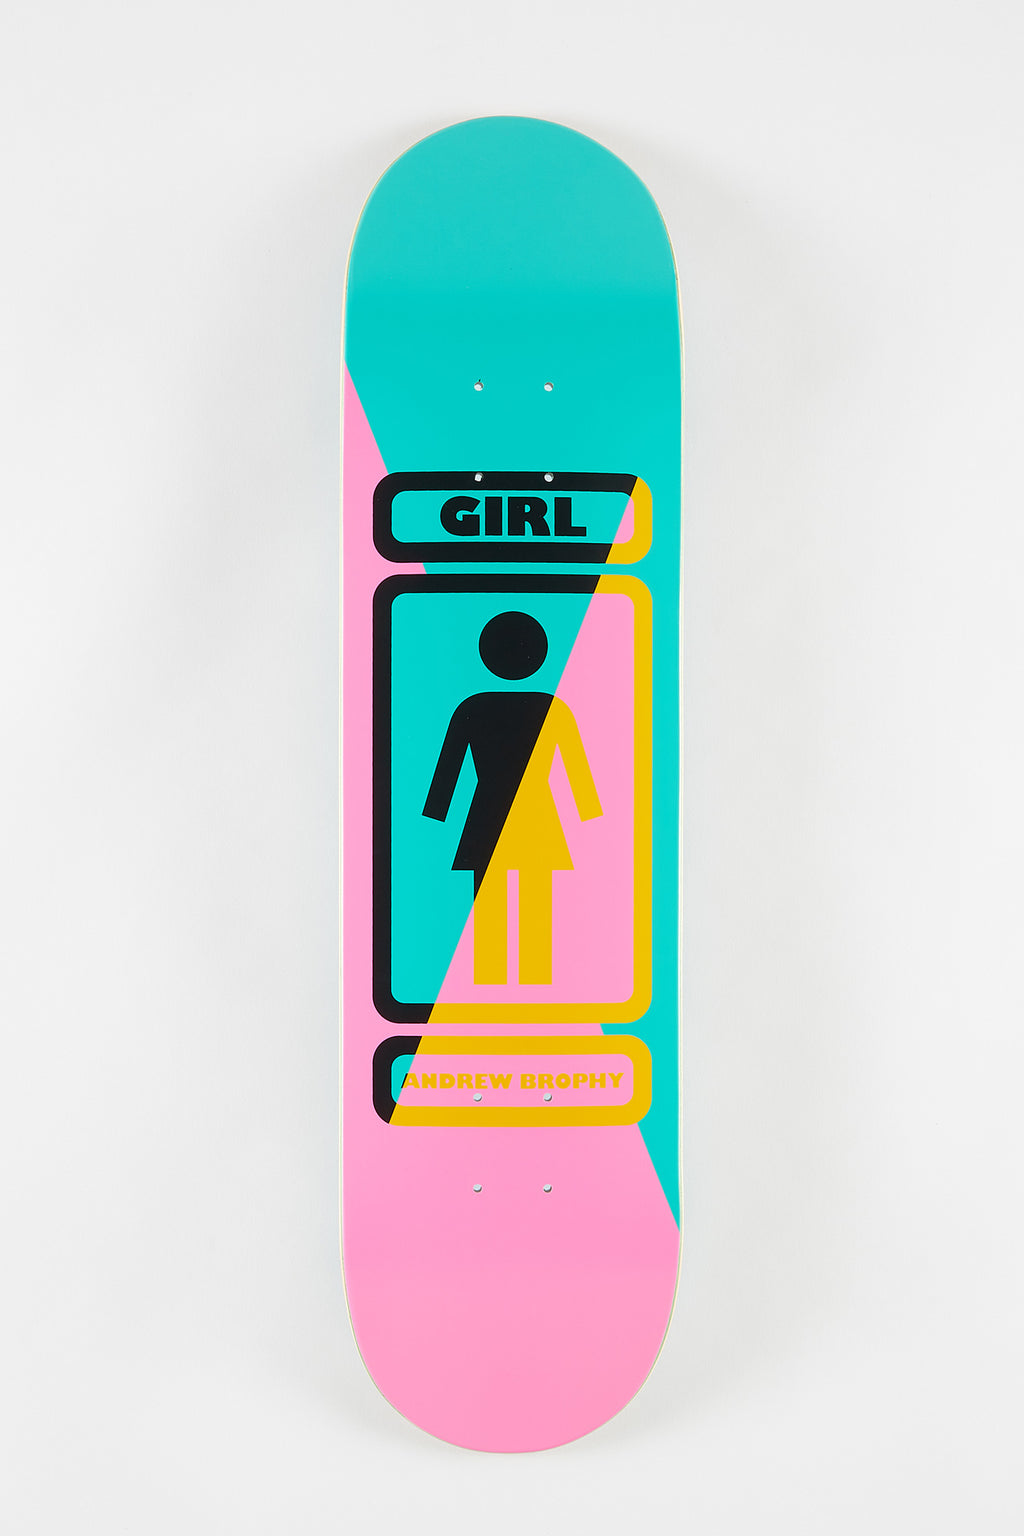 Girl 93 Till Brophy Skateboard Deck 8""